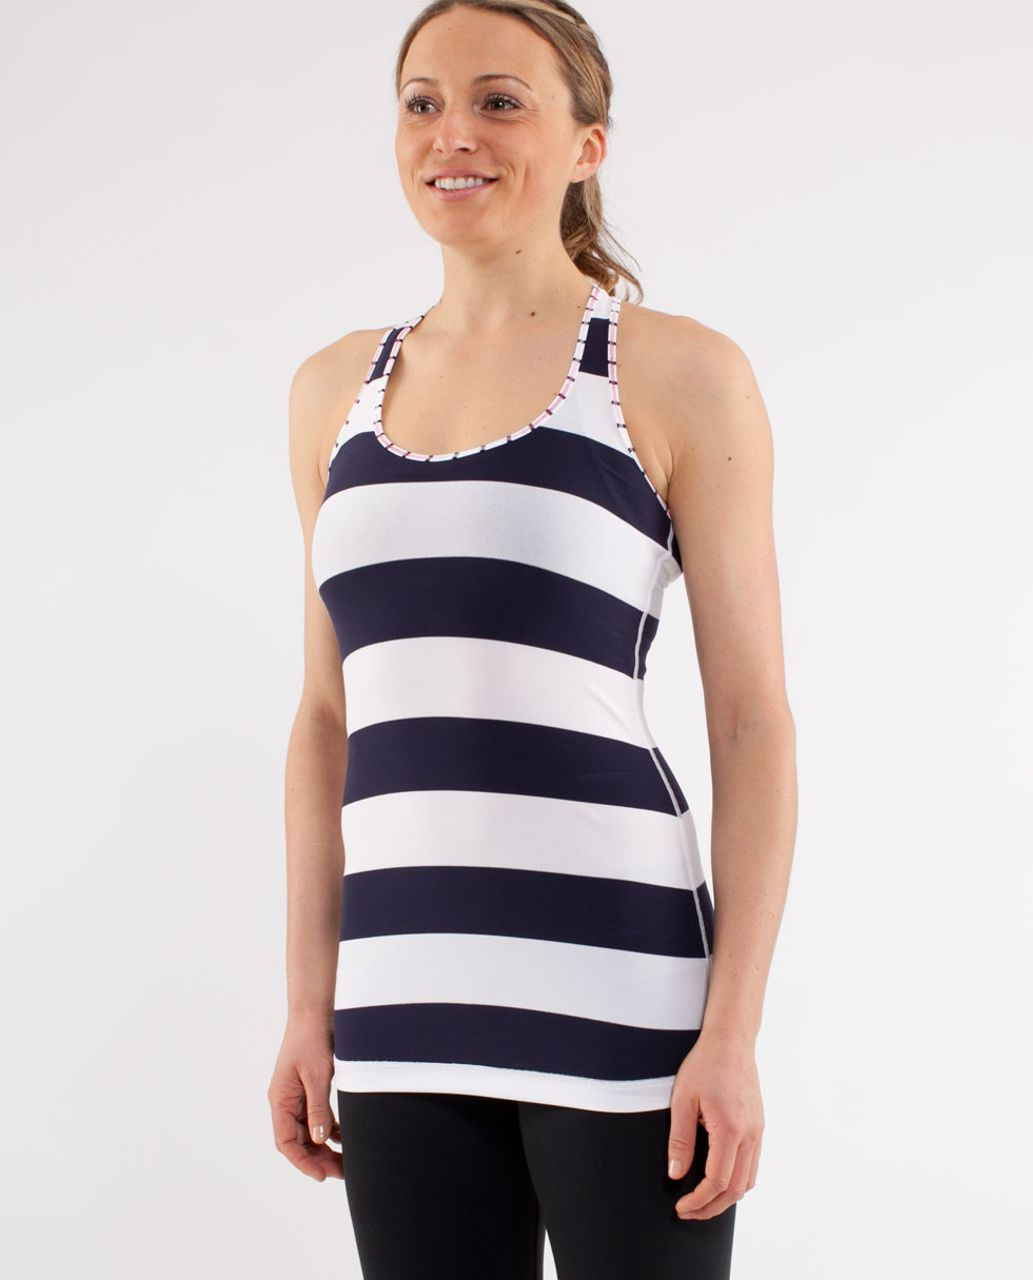 Lululemon Cool Racerback - Wide Bold Stripe White Deep Indigo /  Quiet Stripe White Deep Indigo (Striped Contrast)